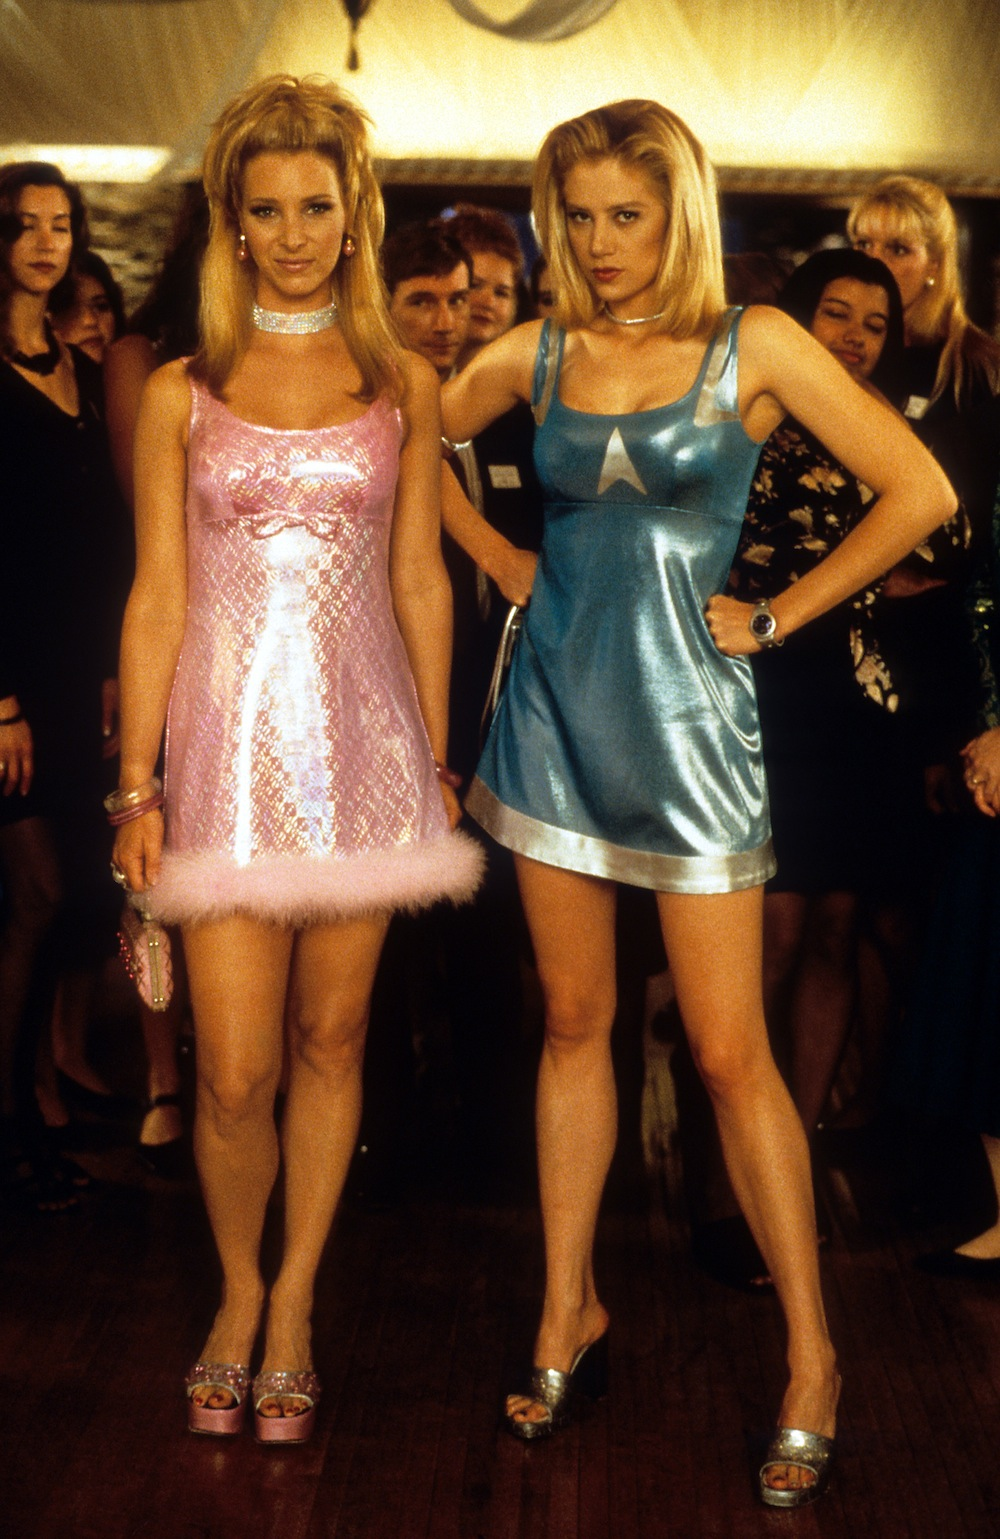 Lisa Kudrow and Mira Sorvino at party in a scene from the film 'Romy And Michele's High School Reunion', 1997. (Photo by Touchstone/Getty Images)